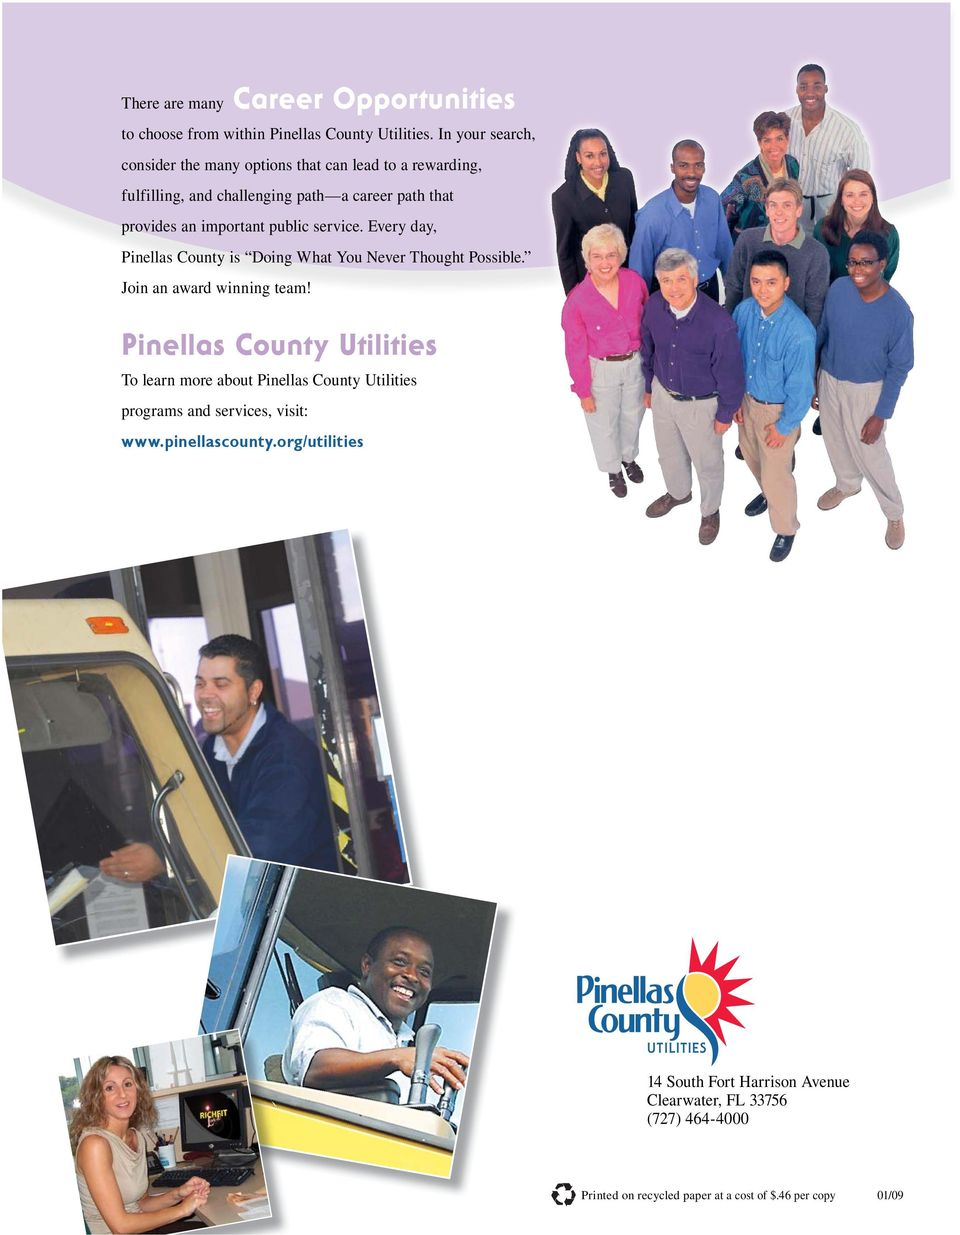 public service. Every day, Pinellas County is Doing What You Never Thought Possible. Join an award winning team!